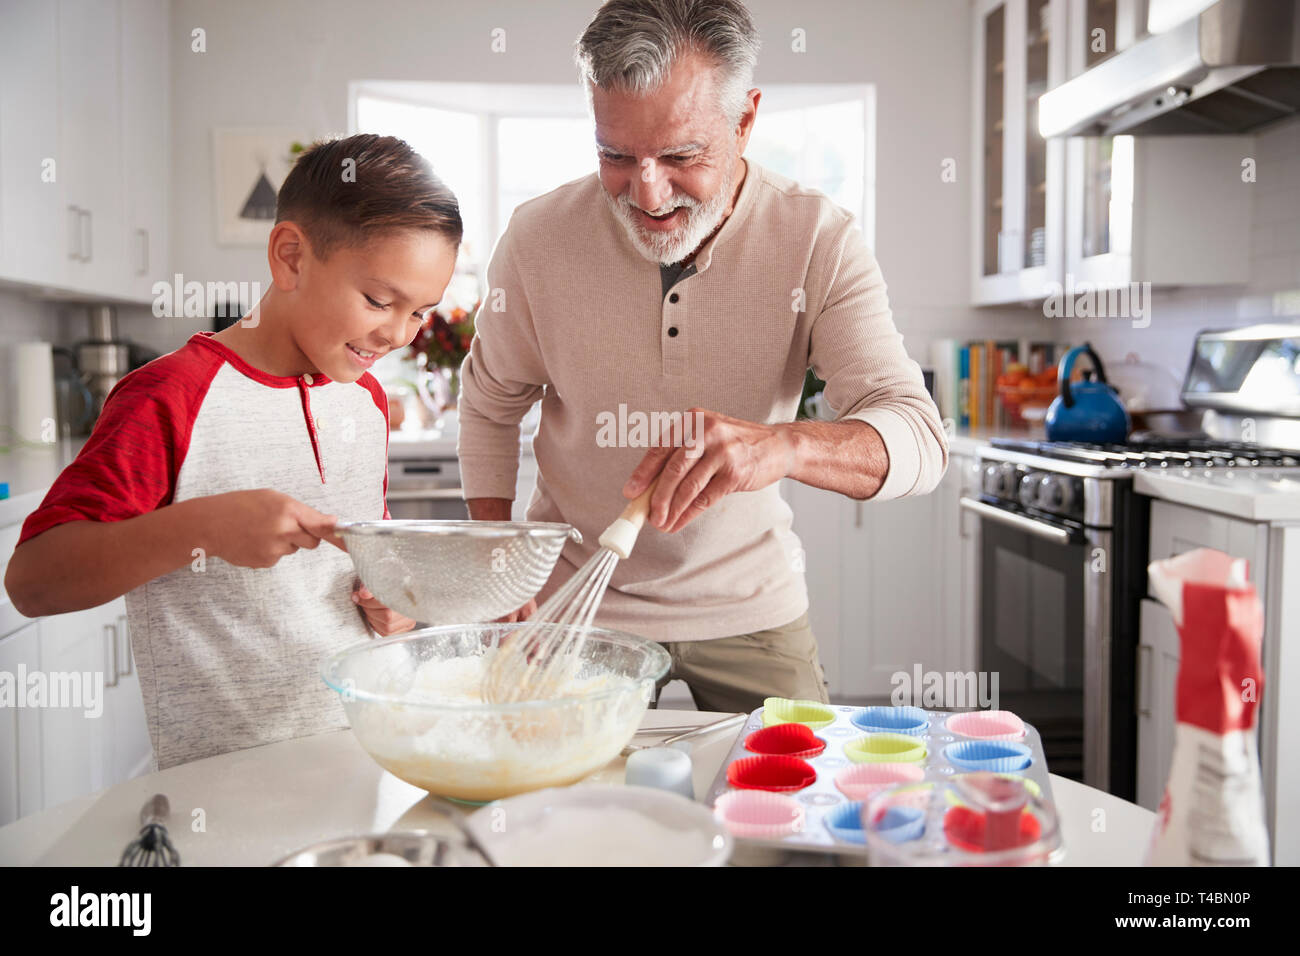 Pre-teen boy making cake mixture in the kitchen with his grandfather, close up - Stock Image